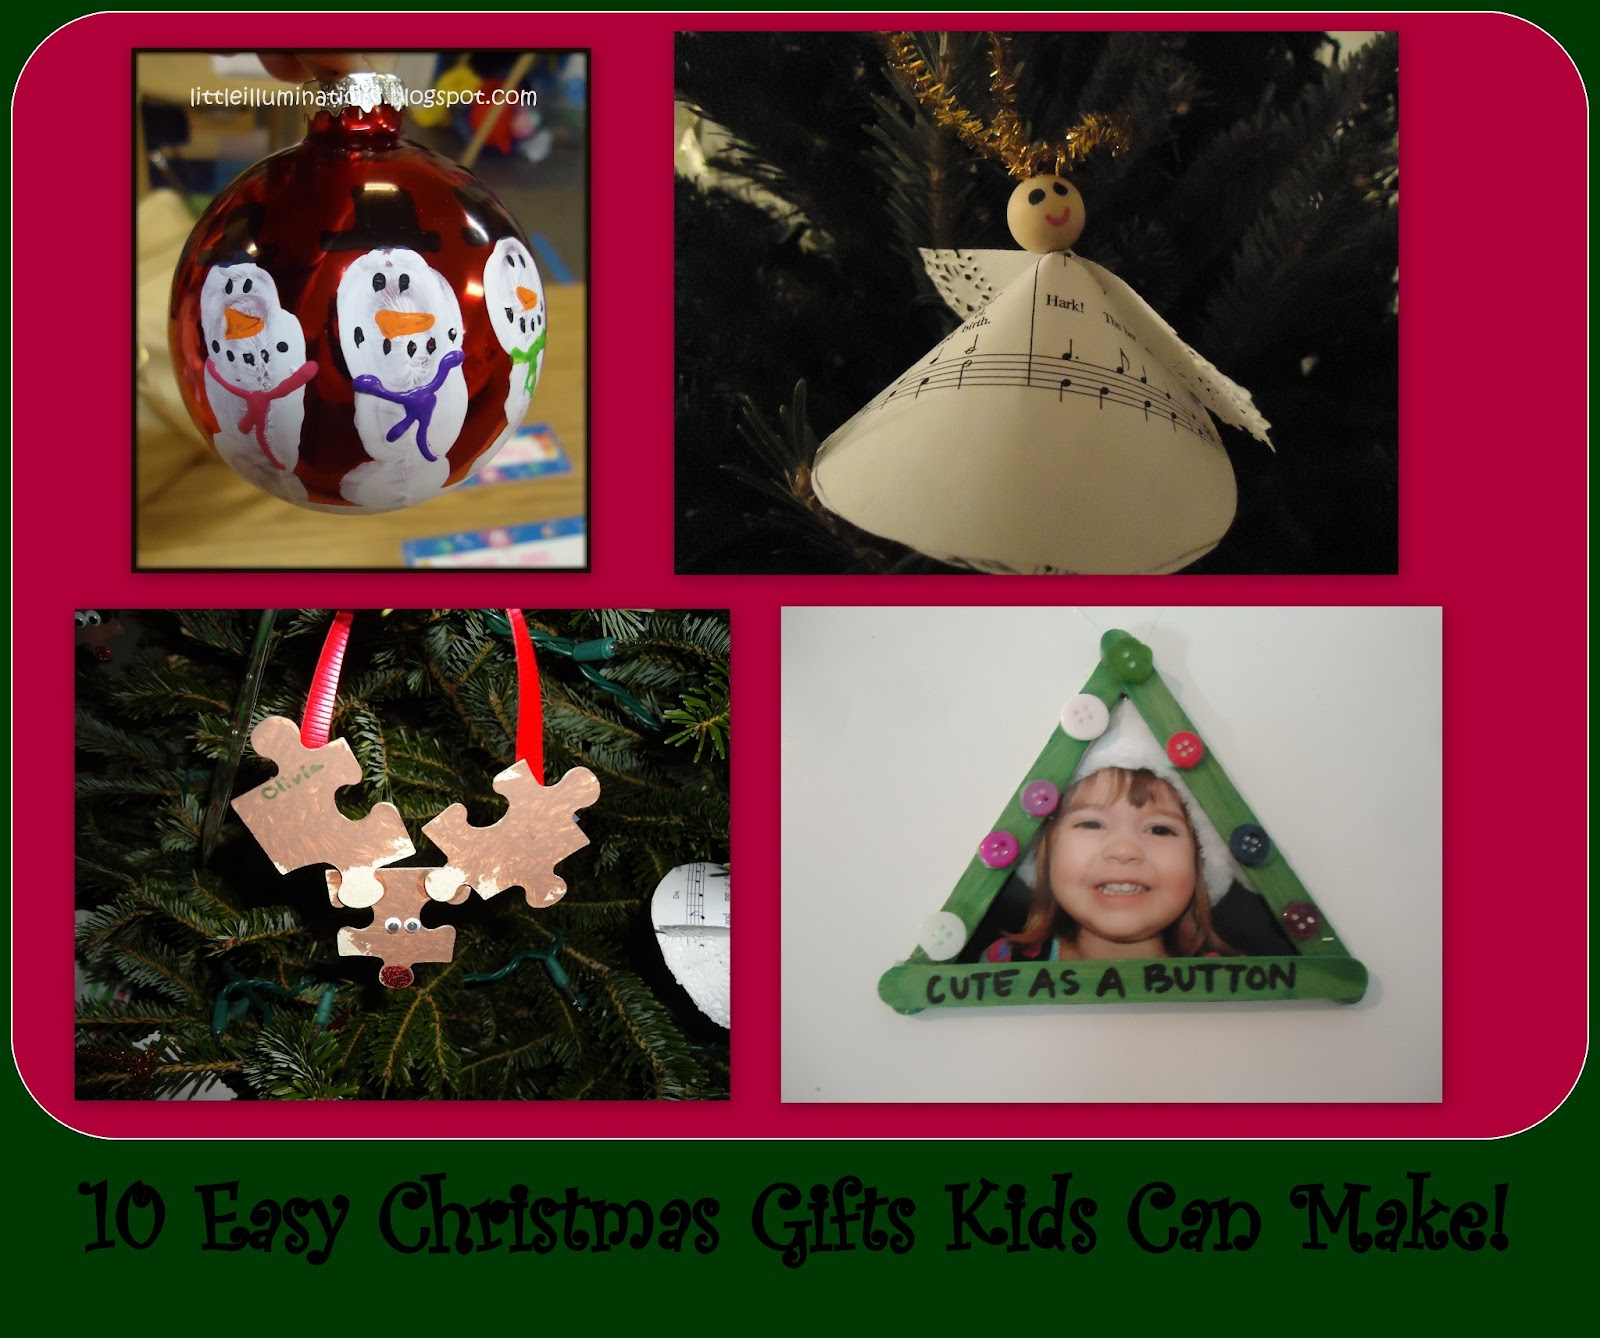 Gifts for kids to make for parents for christmas